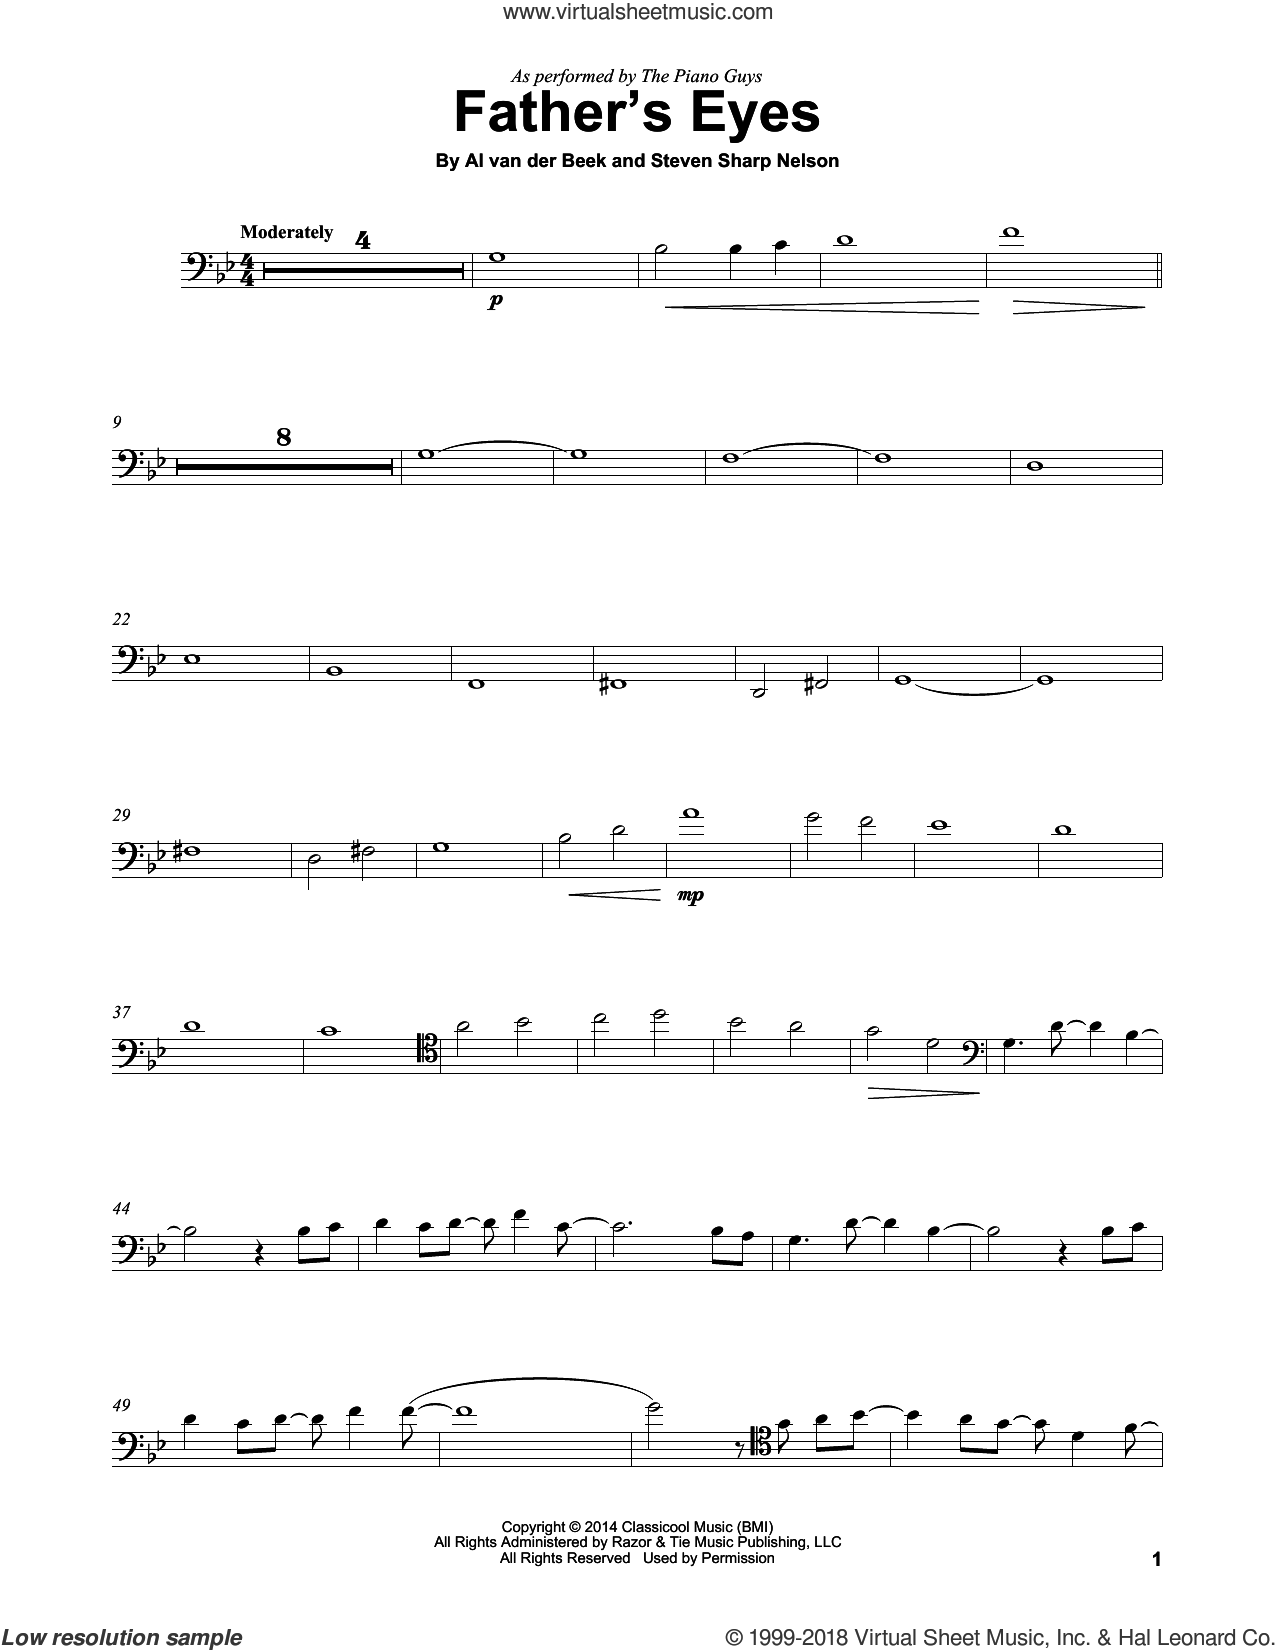 Father's Eyes sheet music for cello solo by The Piano Guys, Al van der Beek and Steven Sharp Nelson, intermediate skill level